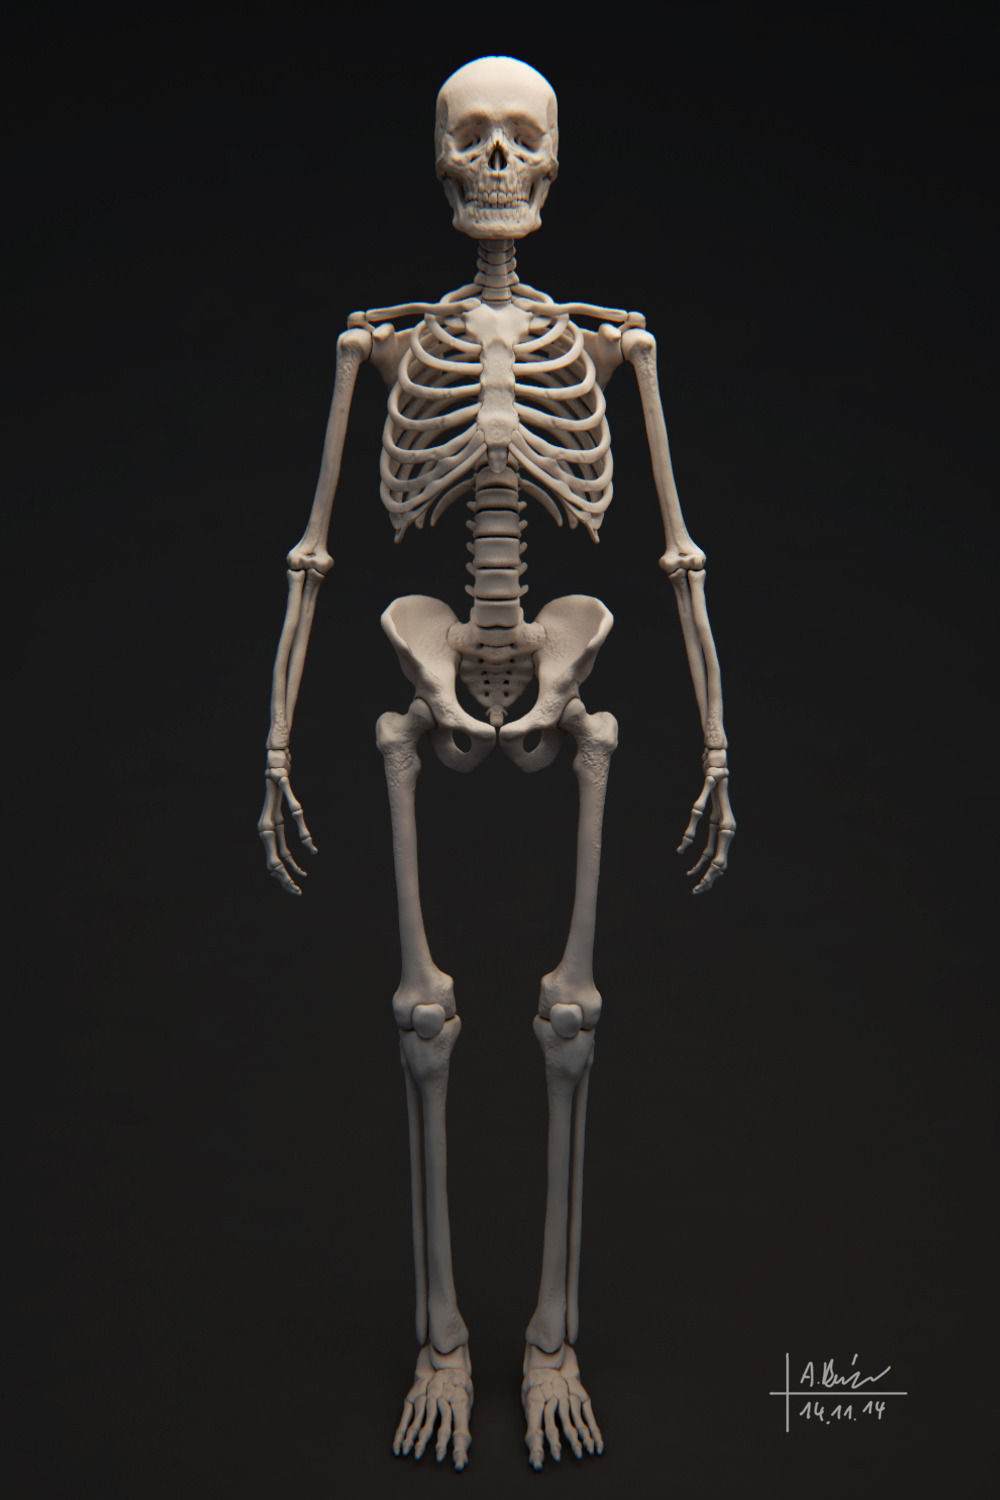 human skeleton 3d model obj tga, Skeleton